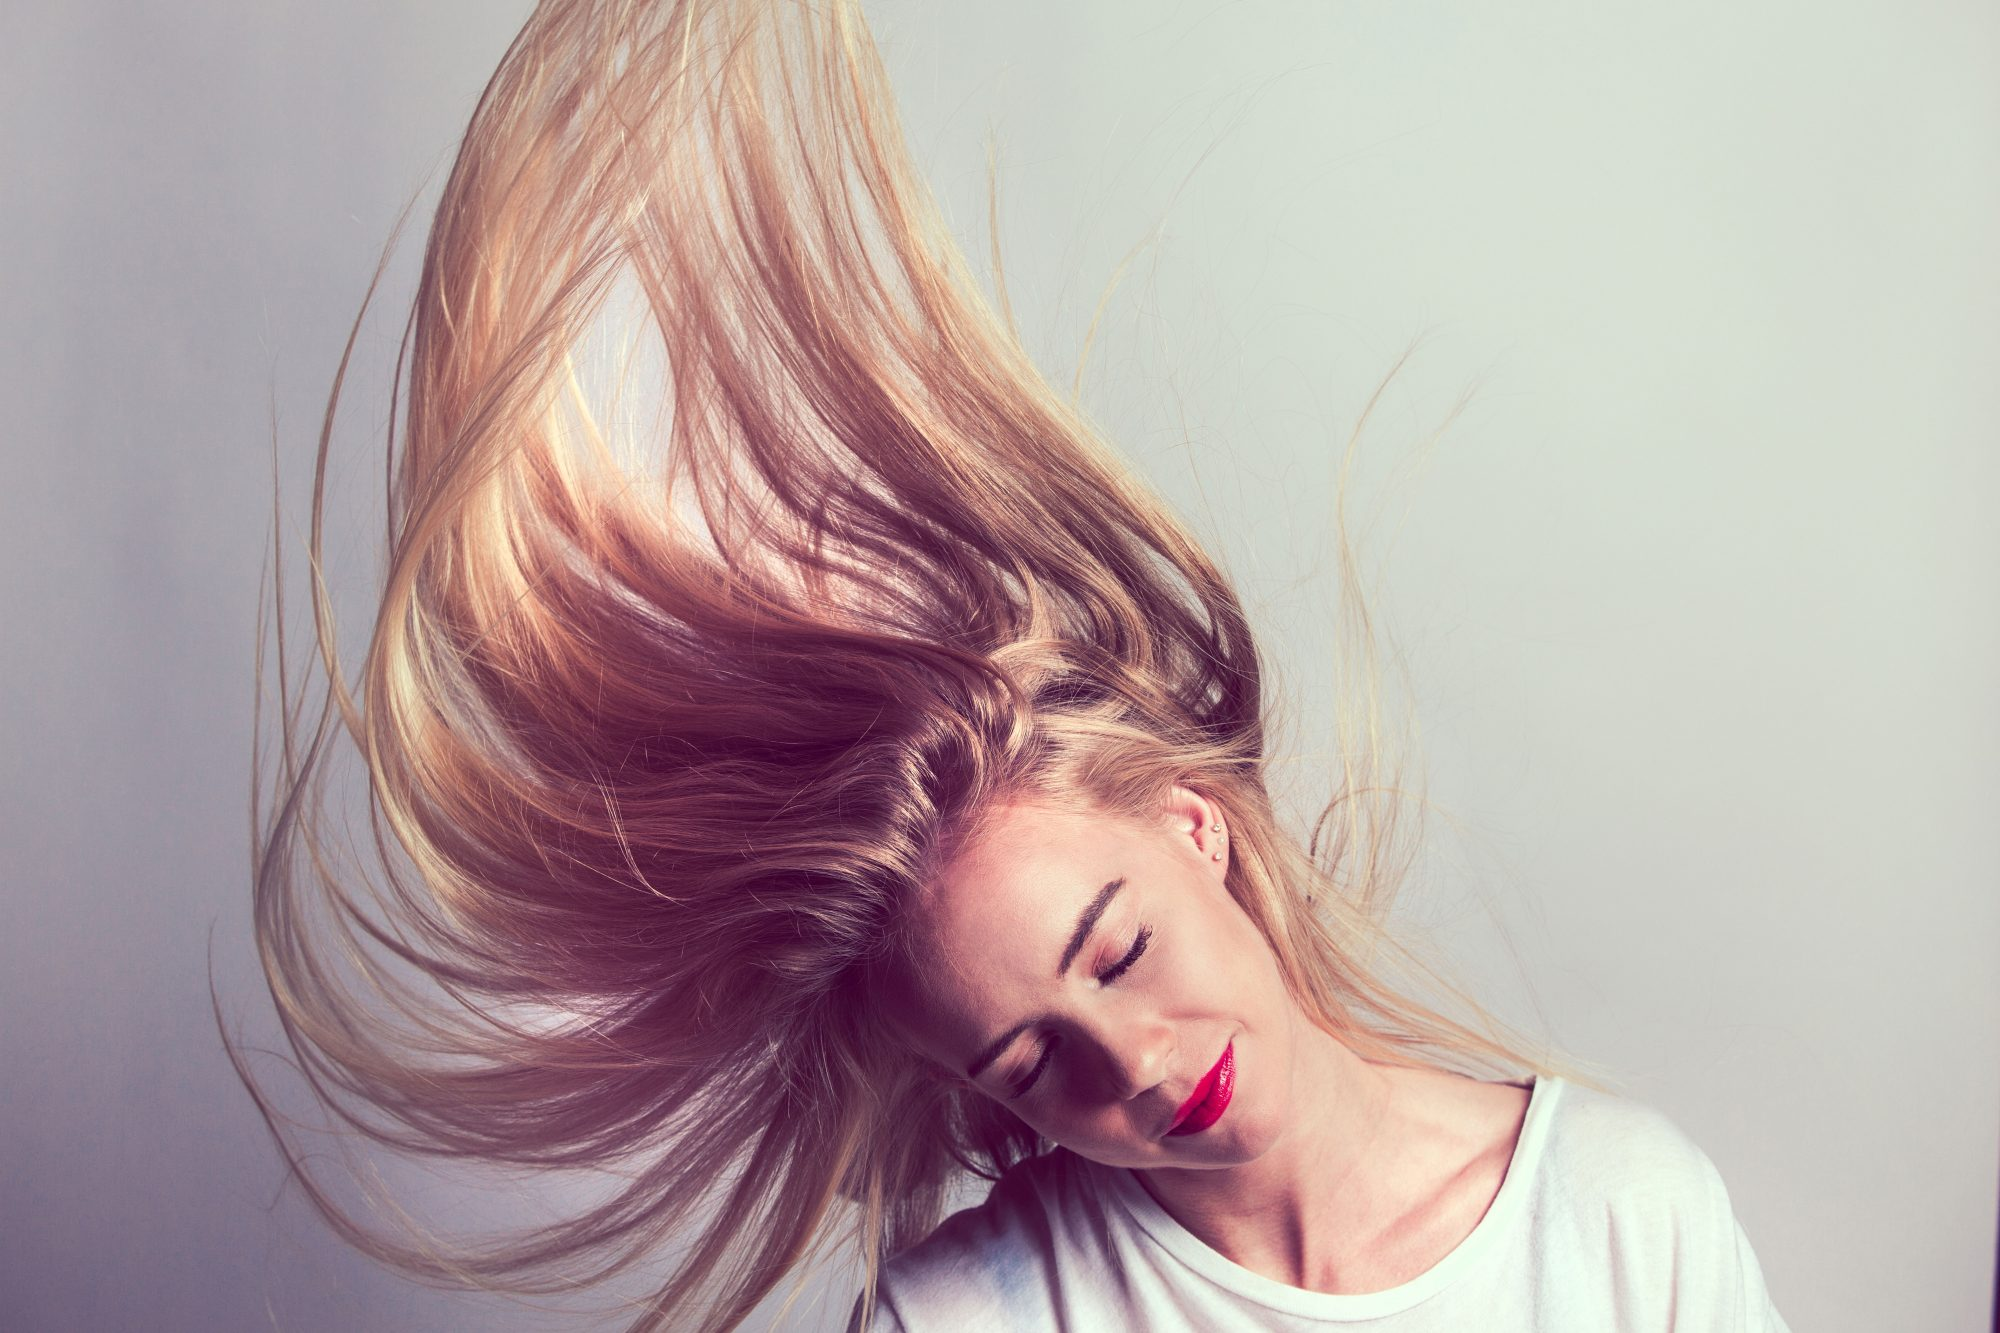 Woman with Smooth Blonde Hair